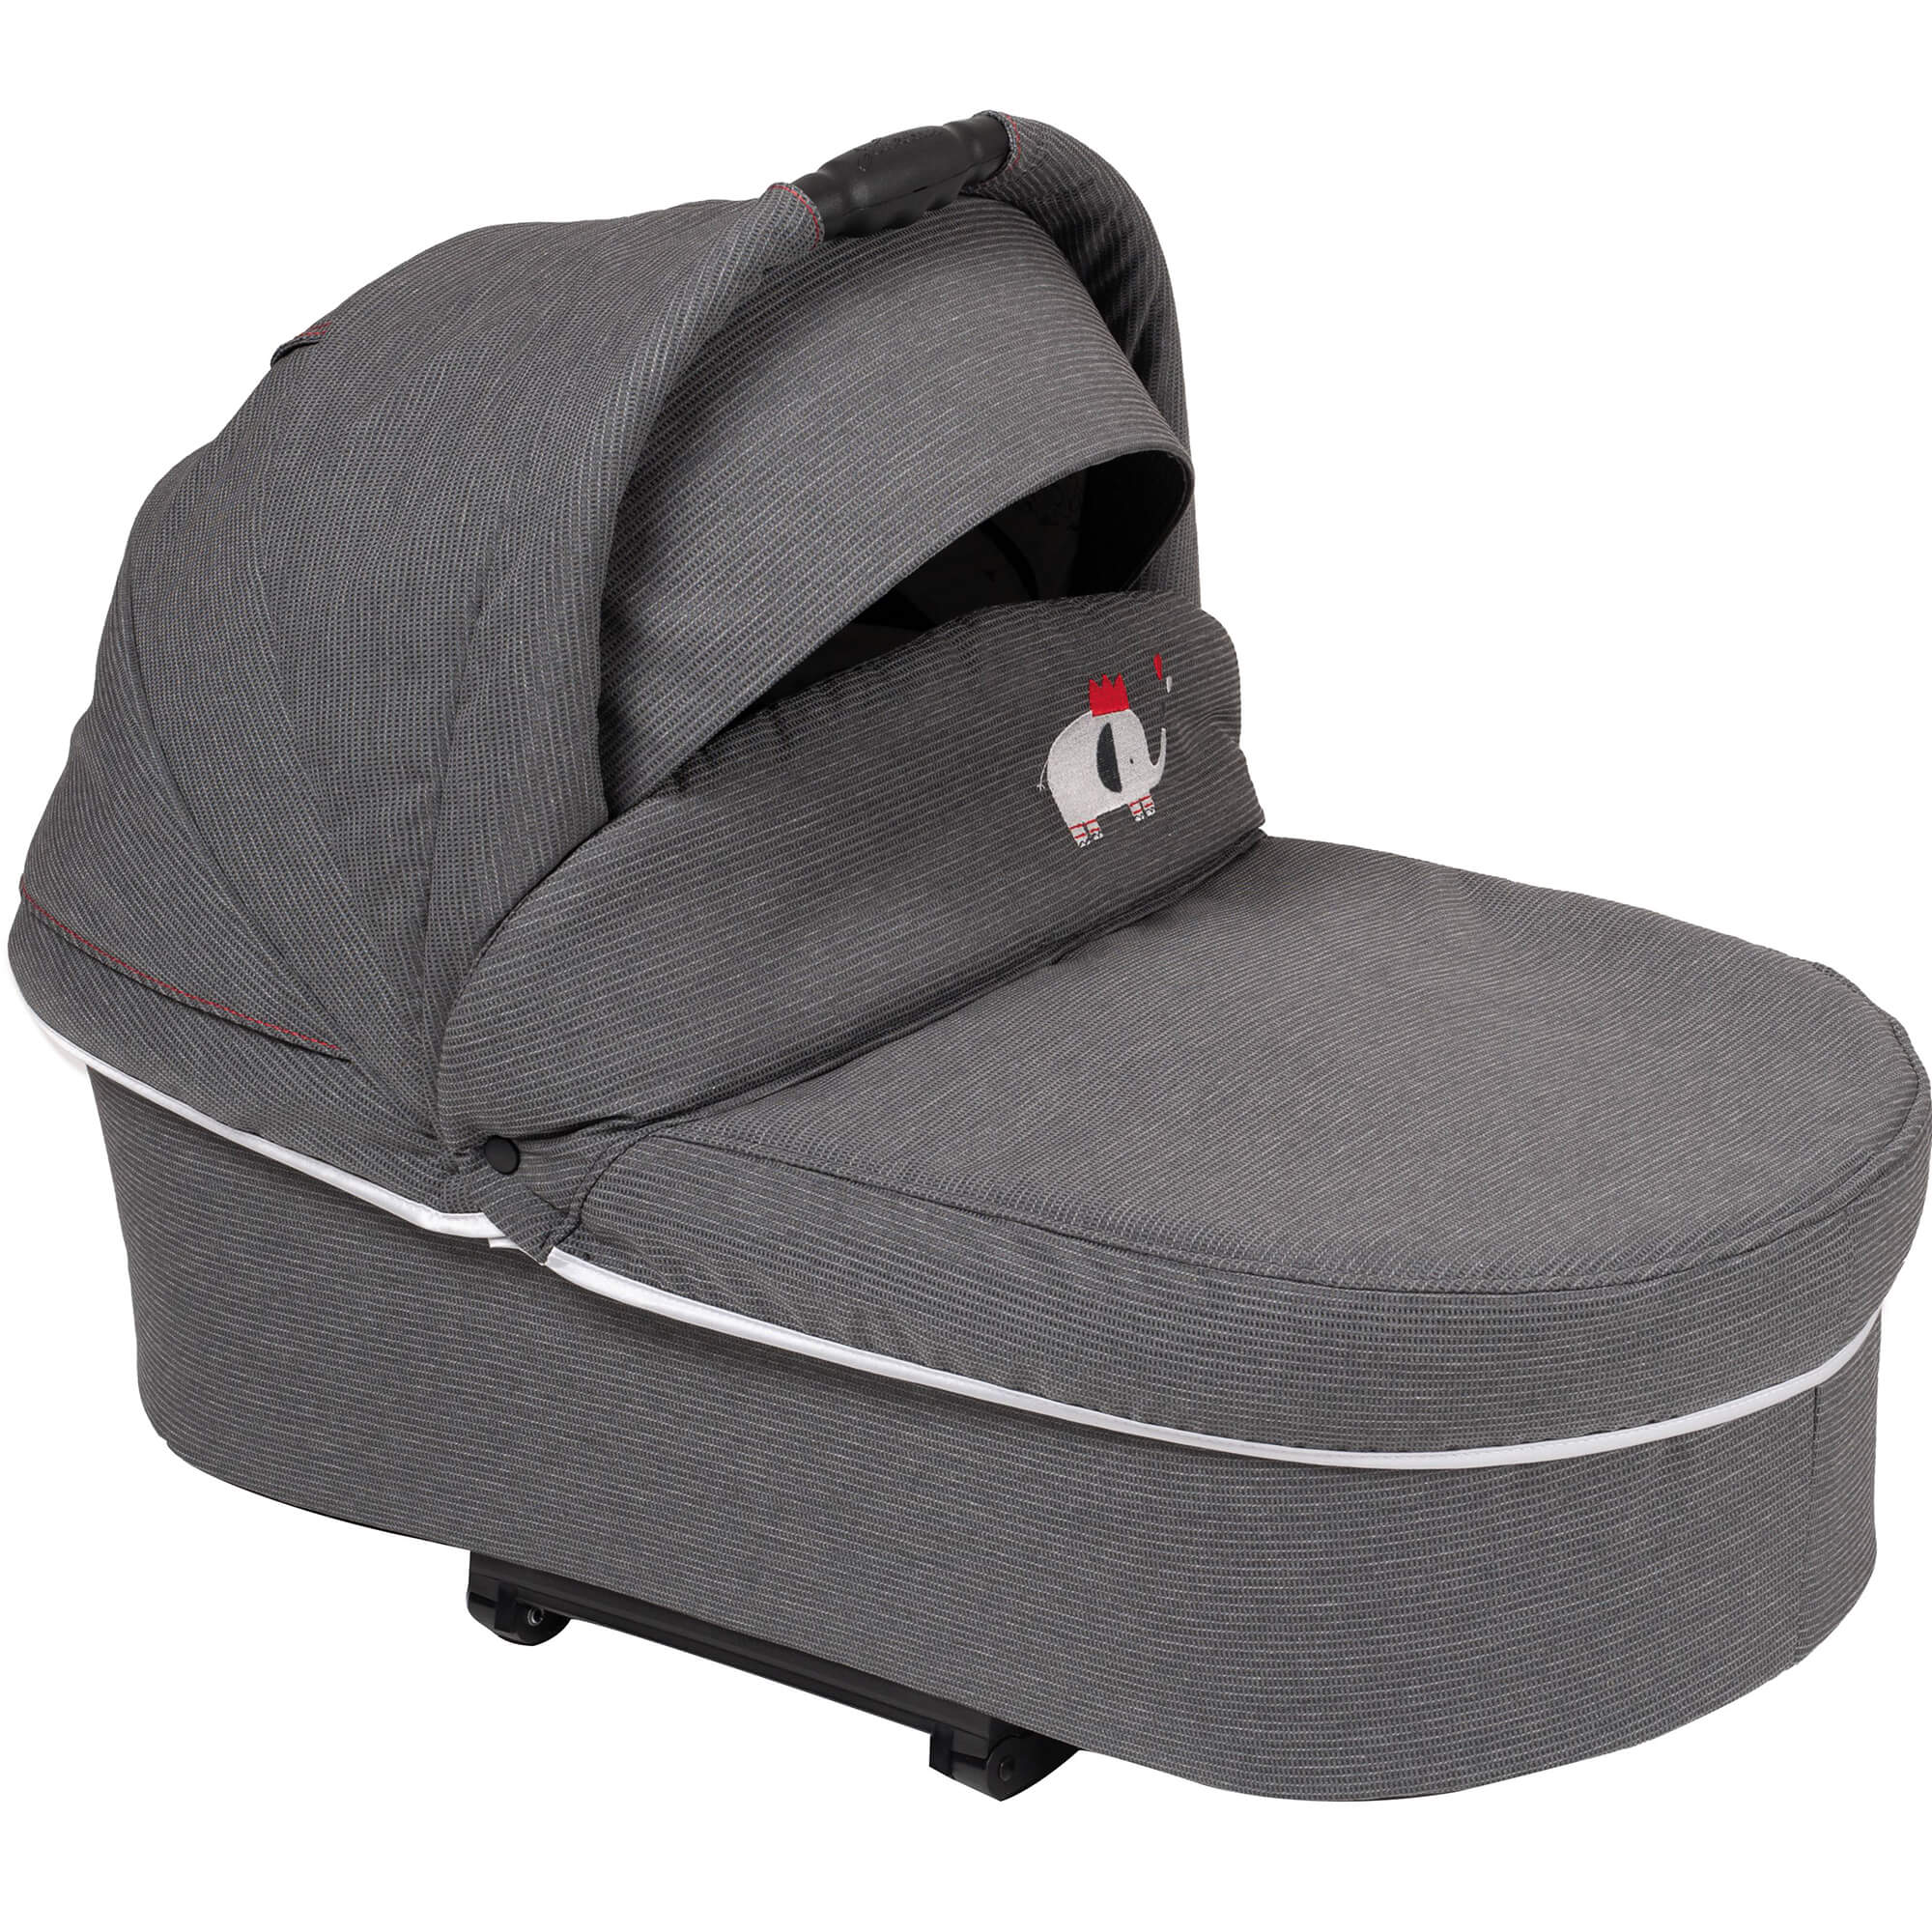 Hartan Baby One Hartan Folding Bag Carrycot Design 624